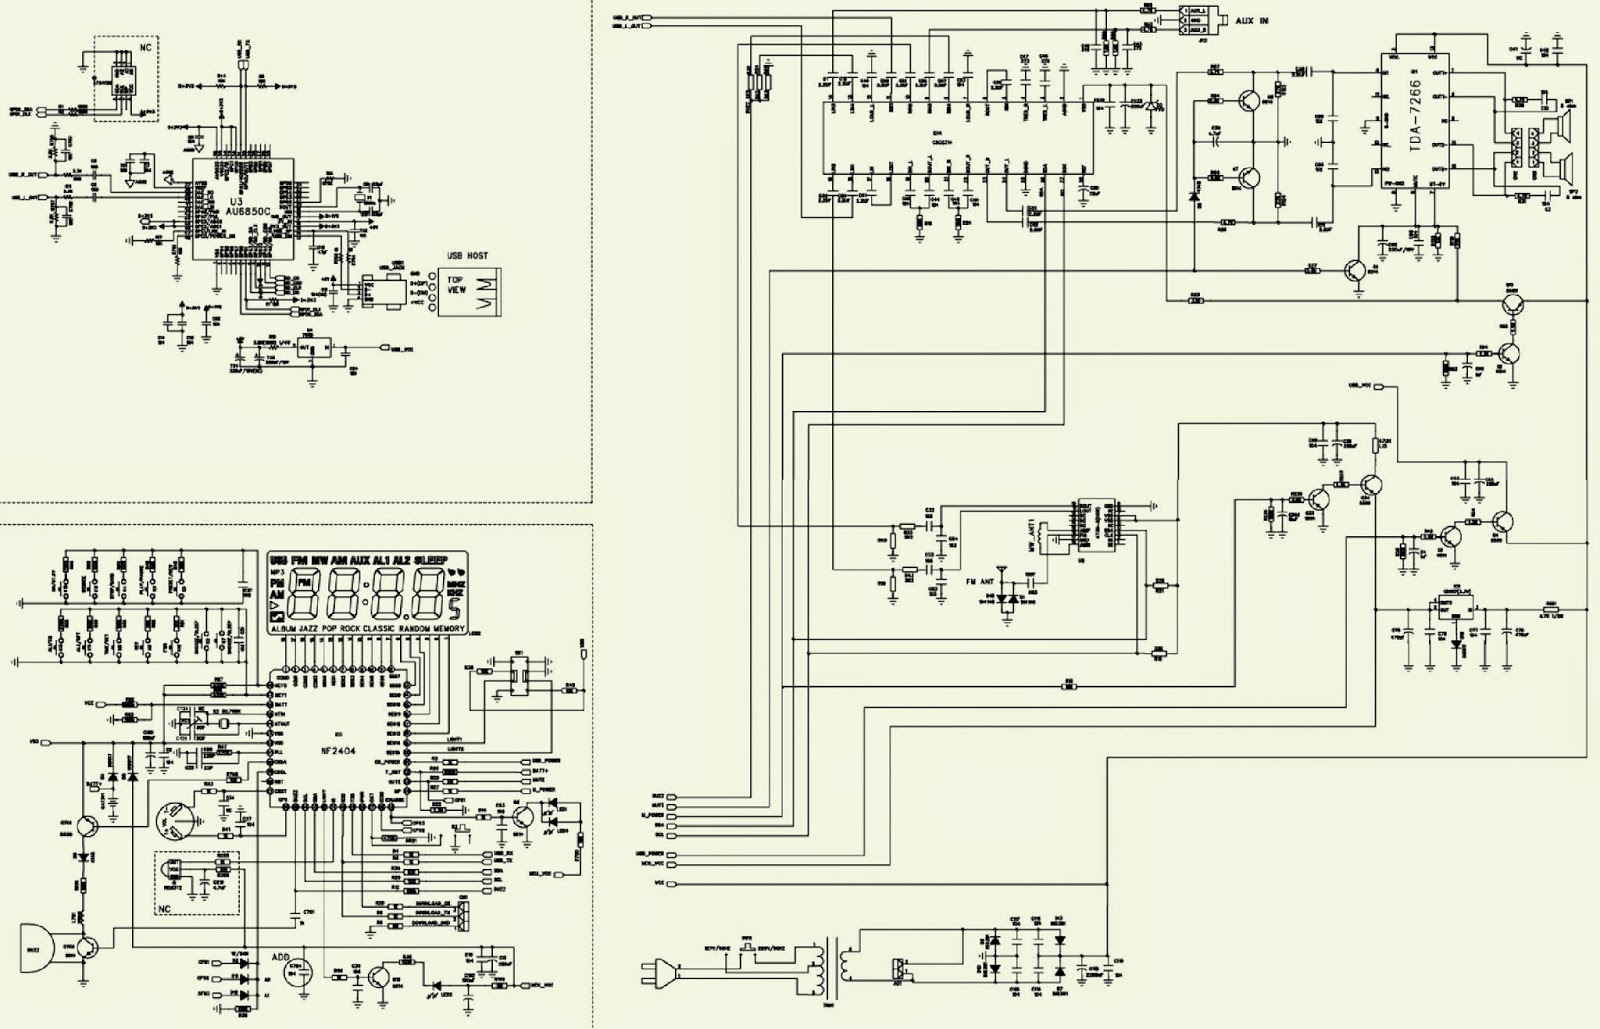 Electro Help 05 23 14 Toshiba 1600 Xp Wiring Diagram Click On The Schematic To Zoom In